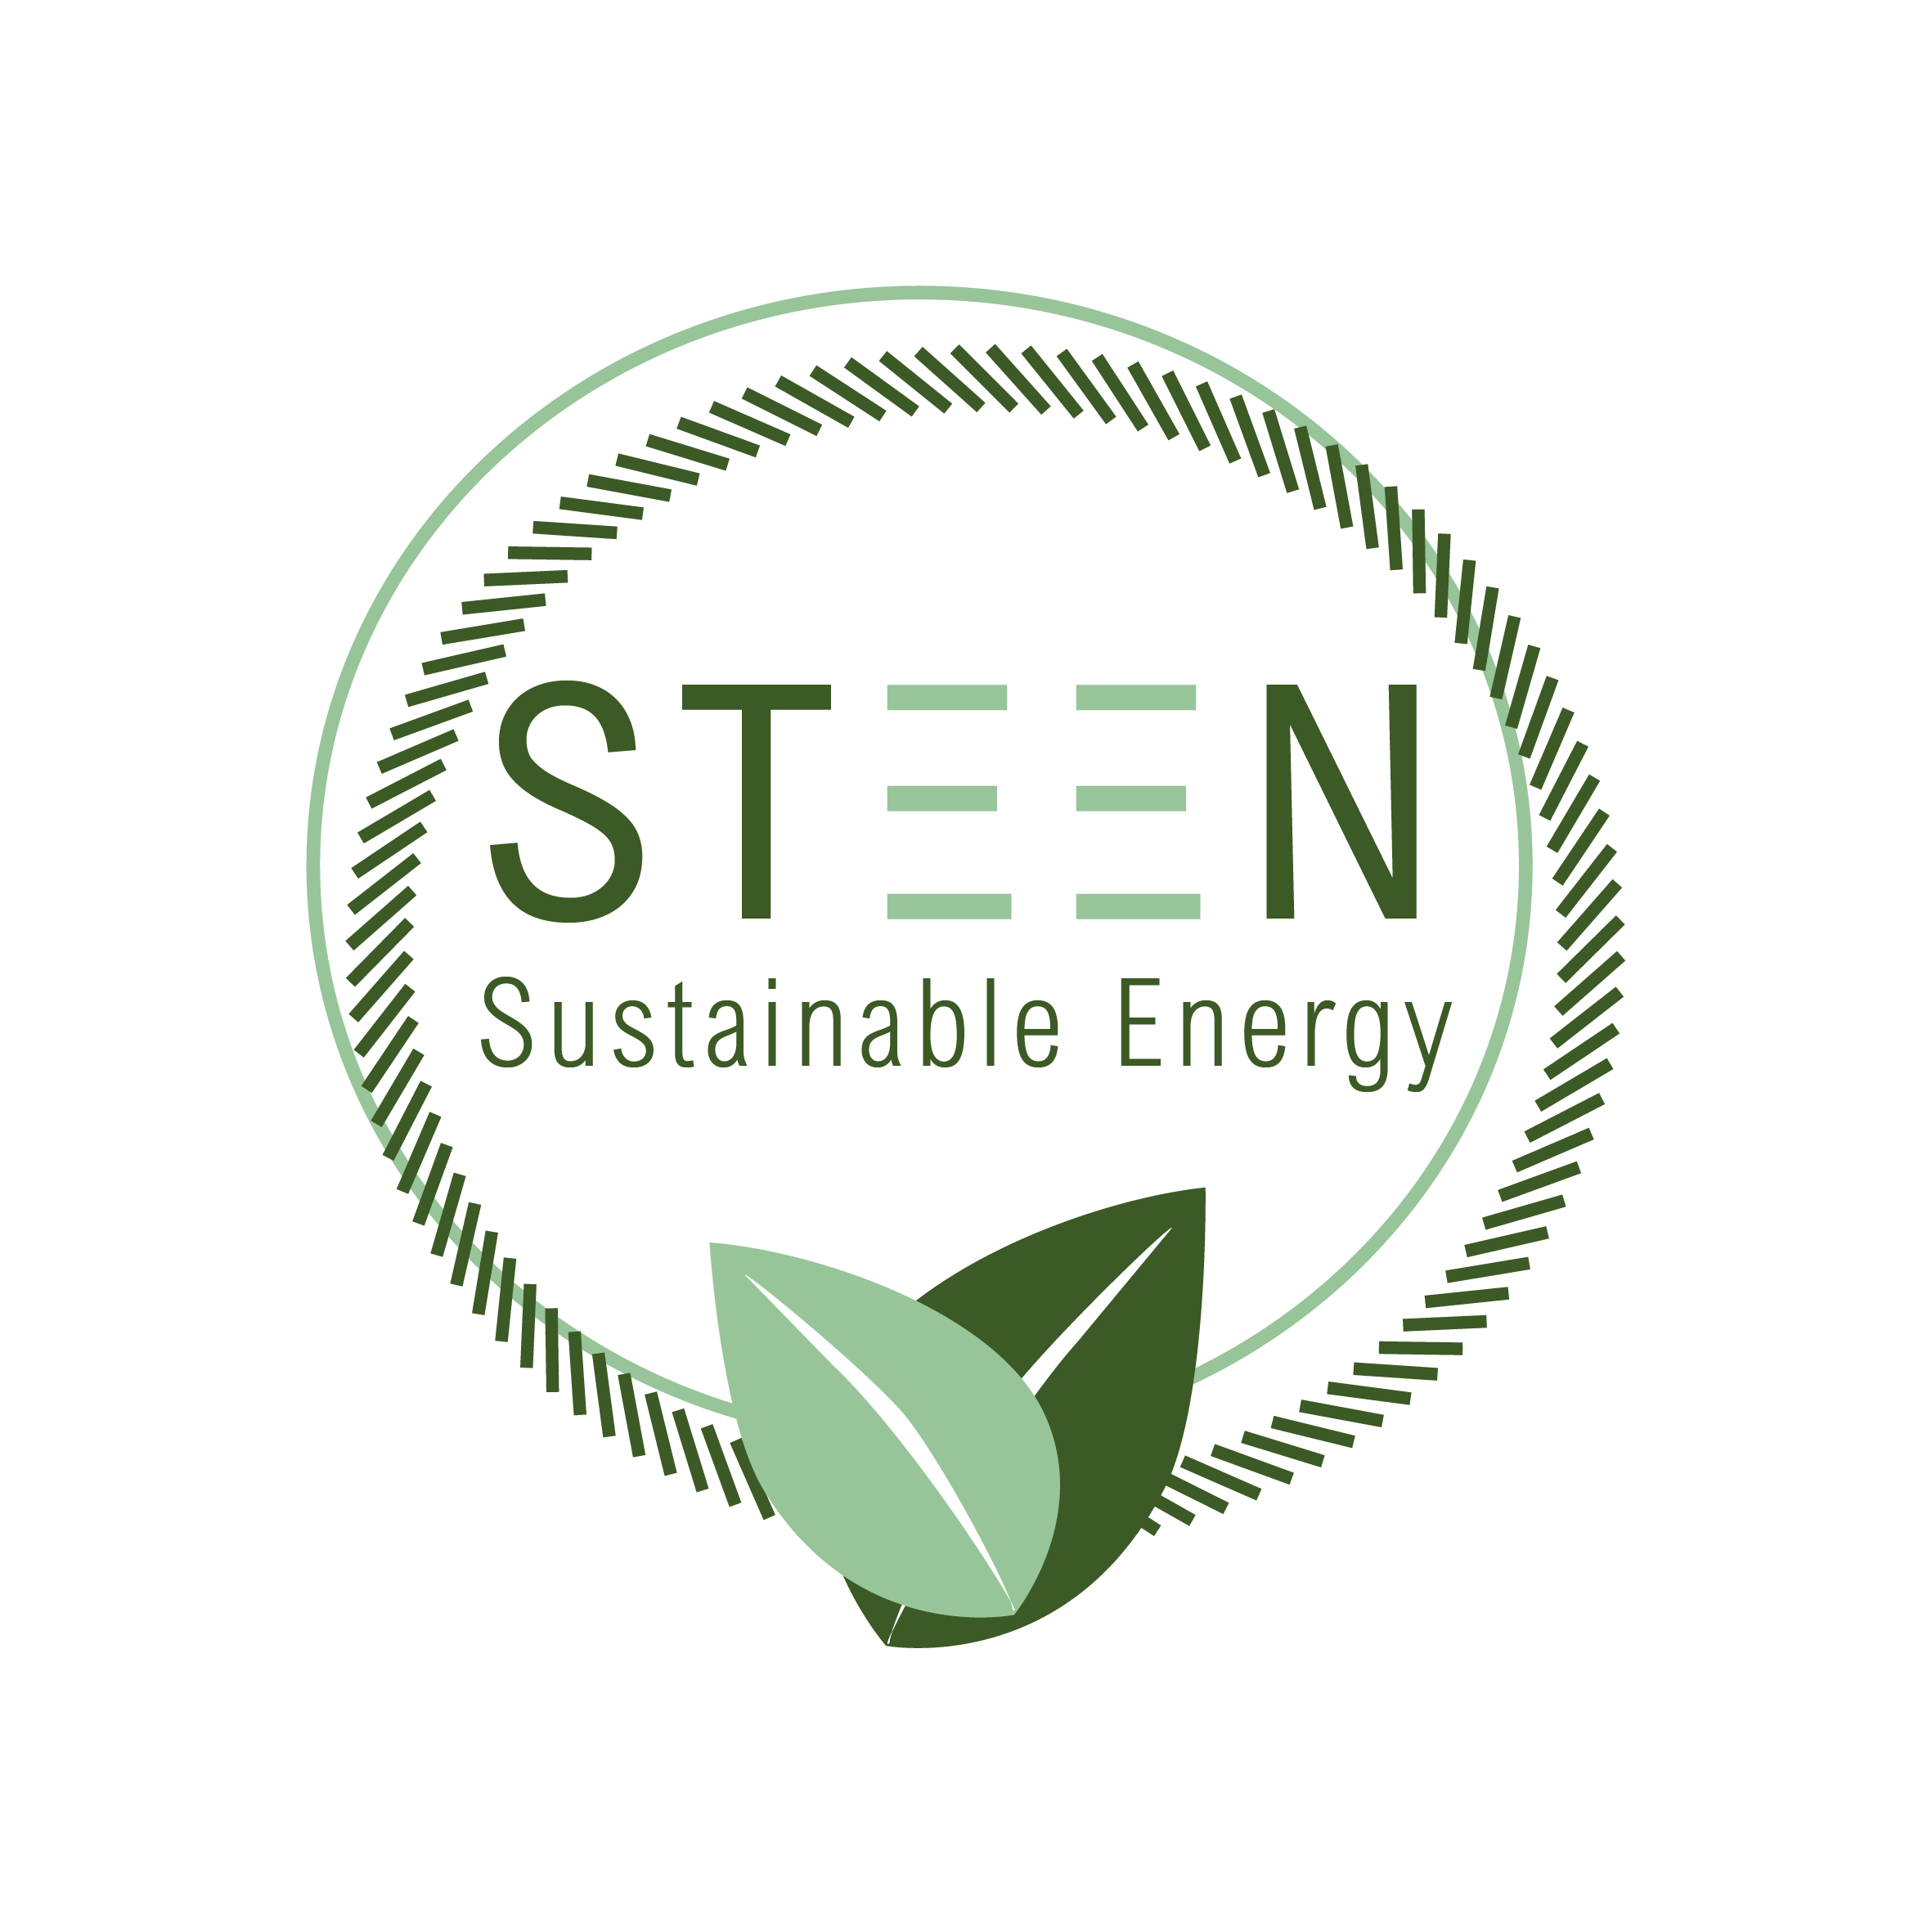 STEEN Sustainable Energy